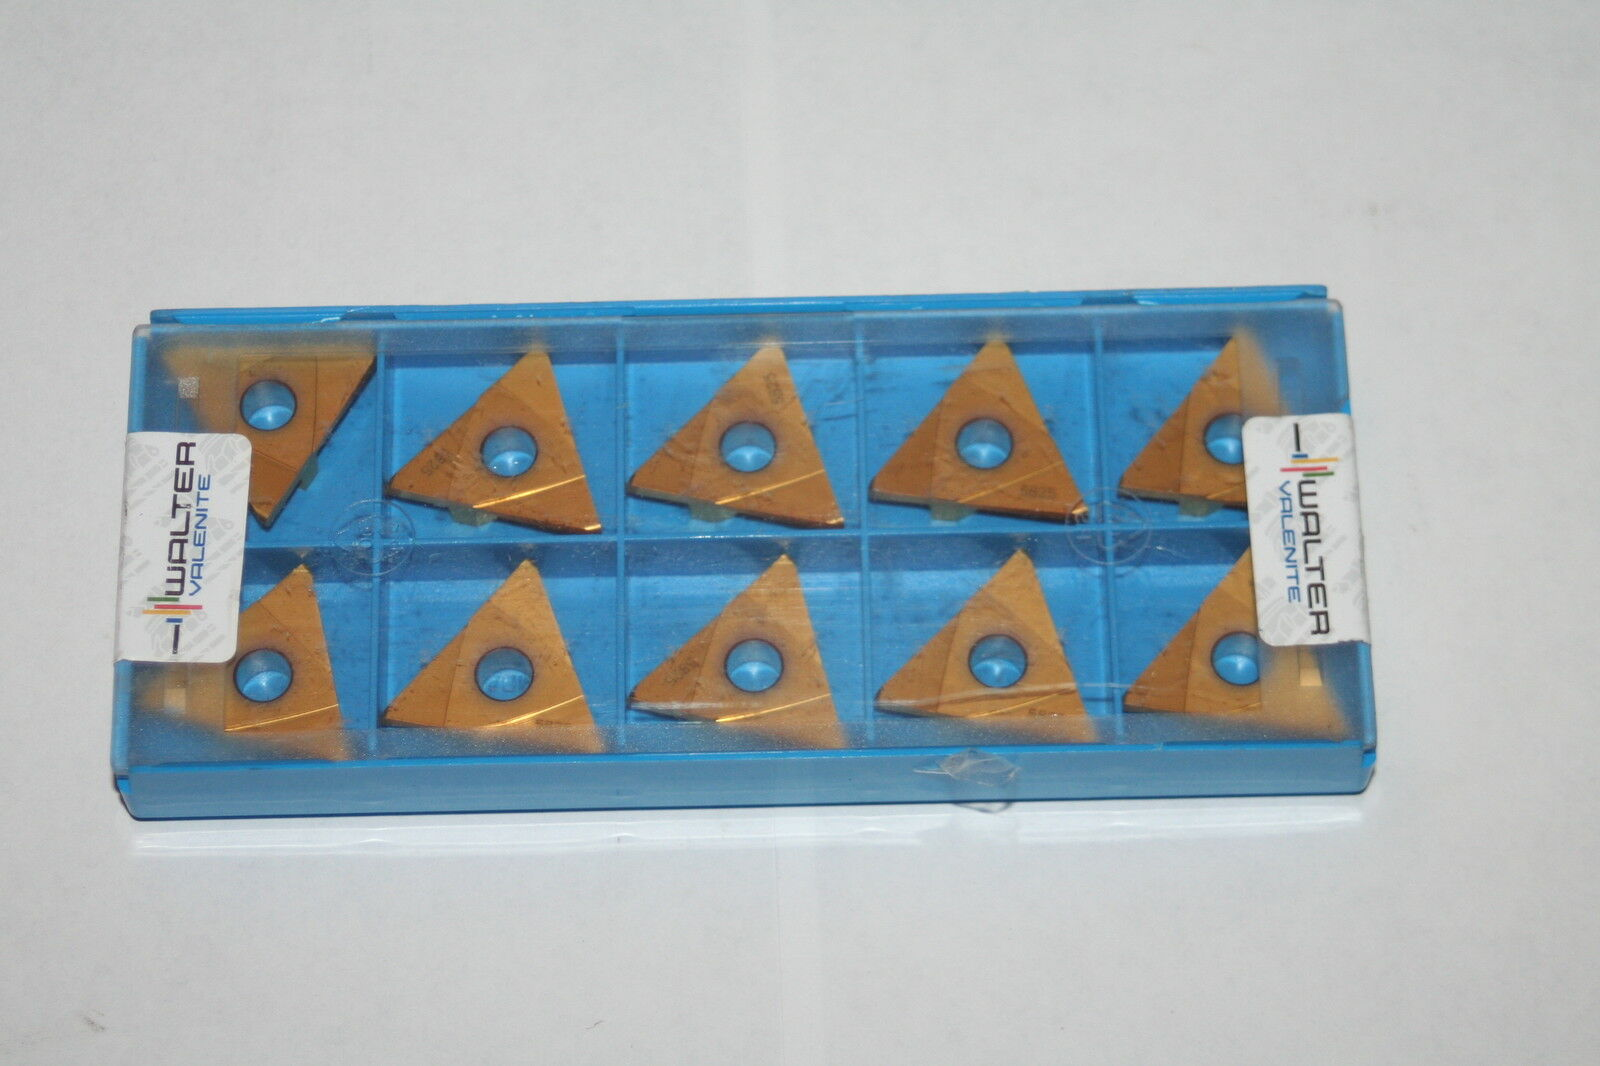 Lot Of 10 Walter Valenite It00tn 6116046 Tin Coated Carbide Inserts Holder 5825 Insertsgrade 1 3only 4 Available See More